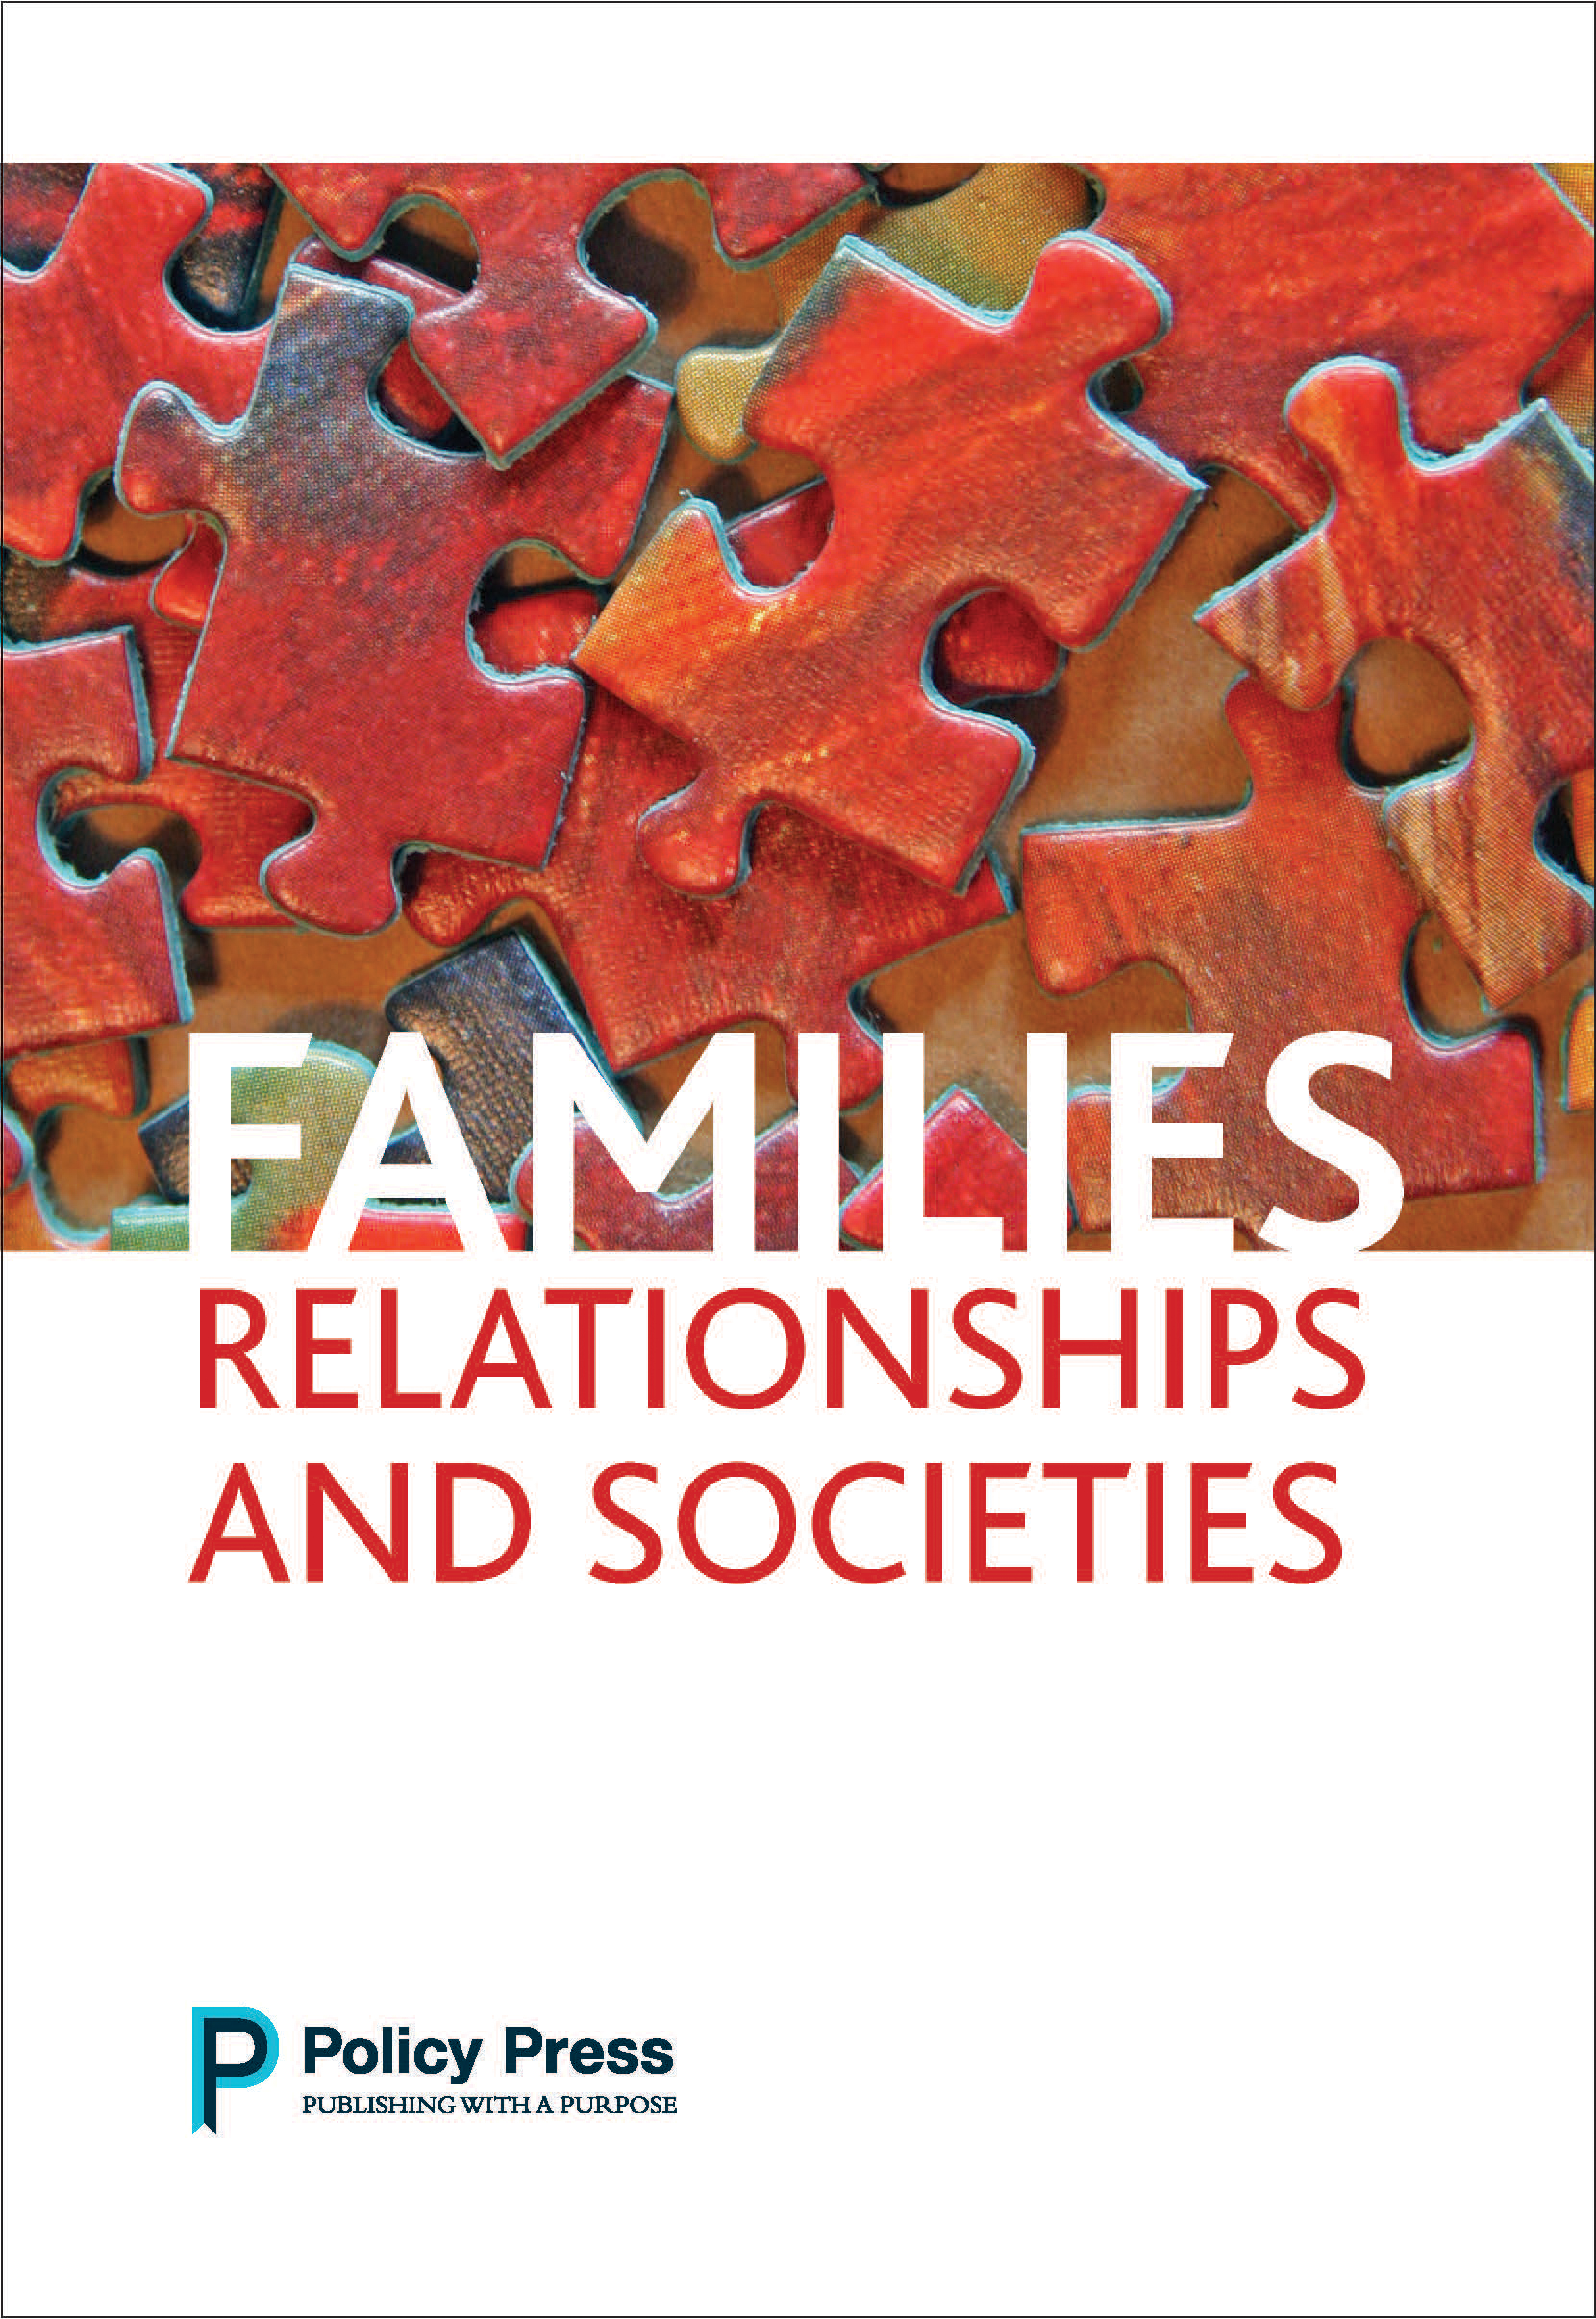 Families relationships and societies cover